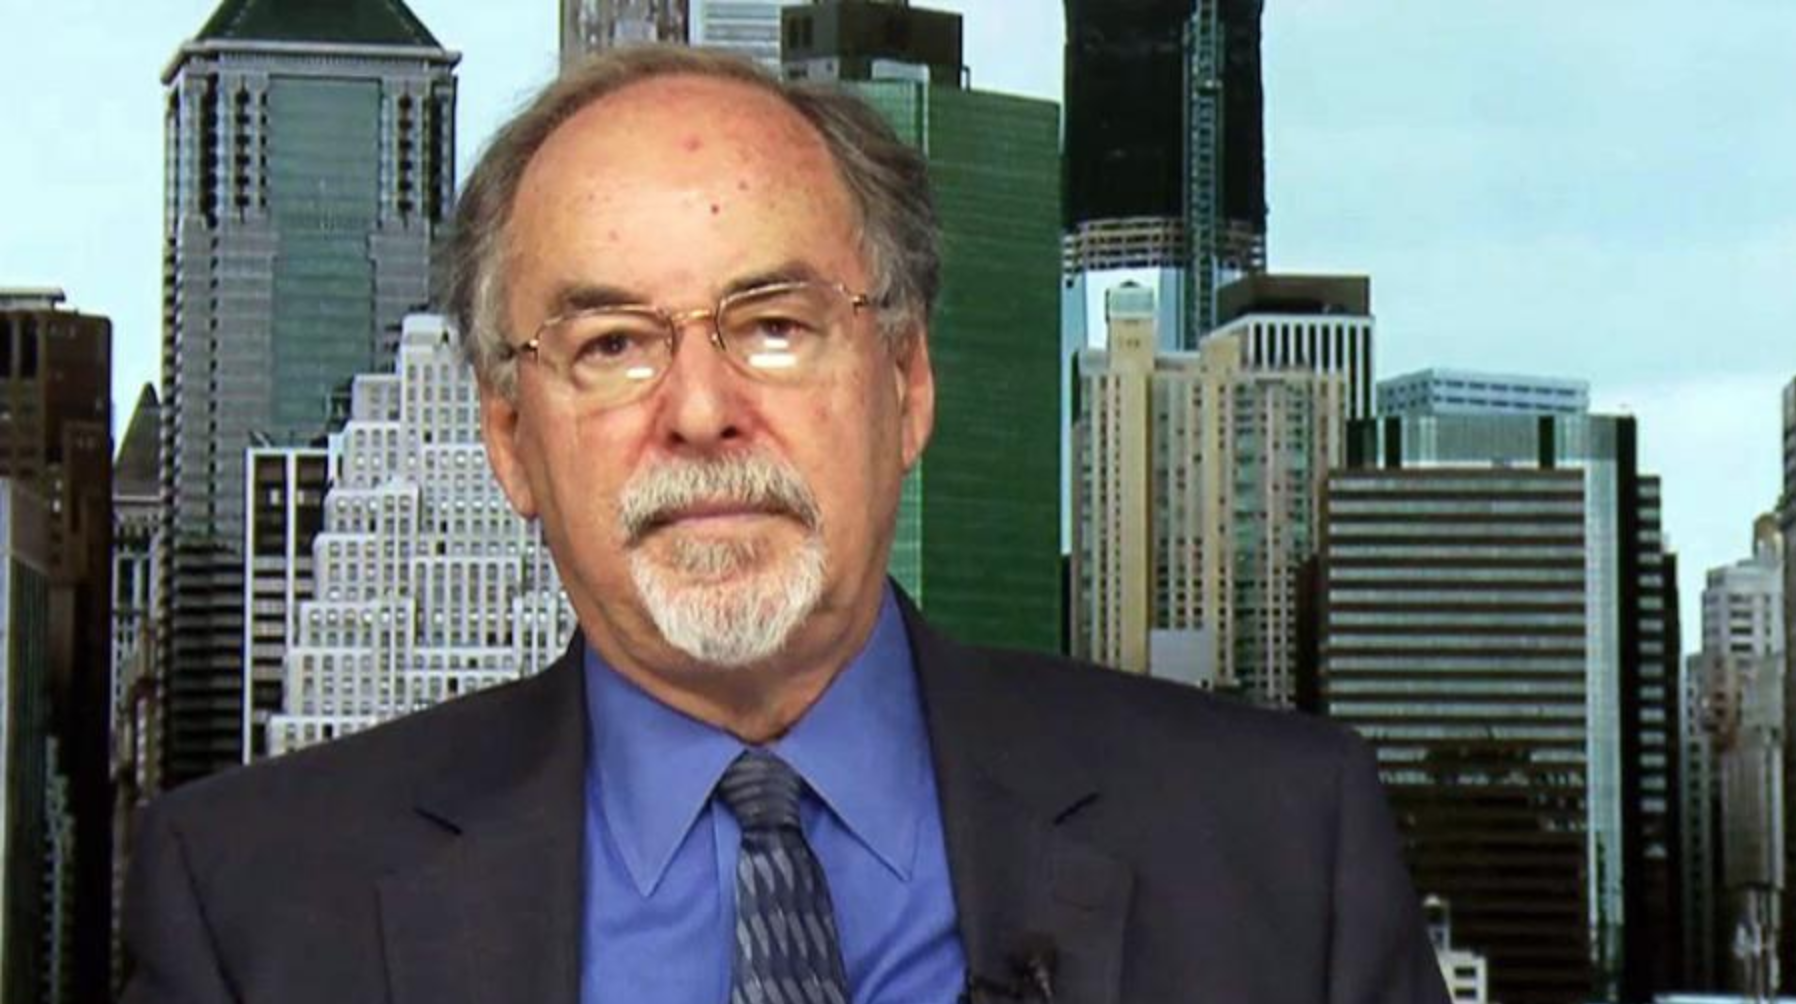 anti-Muslim extremist David Horowitz